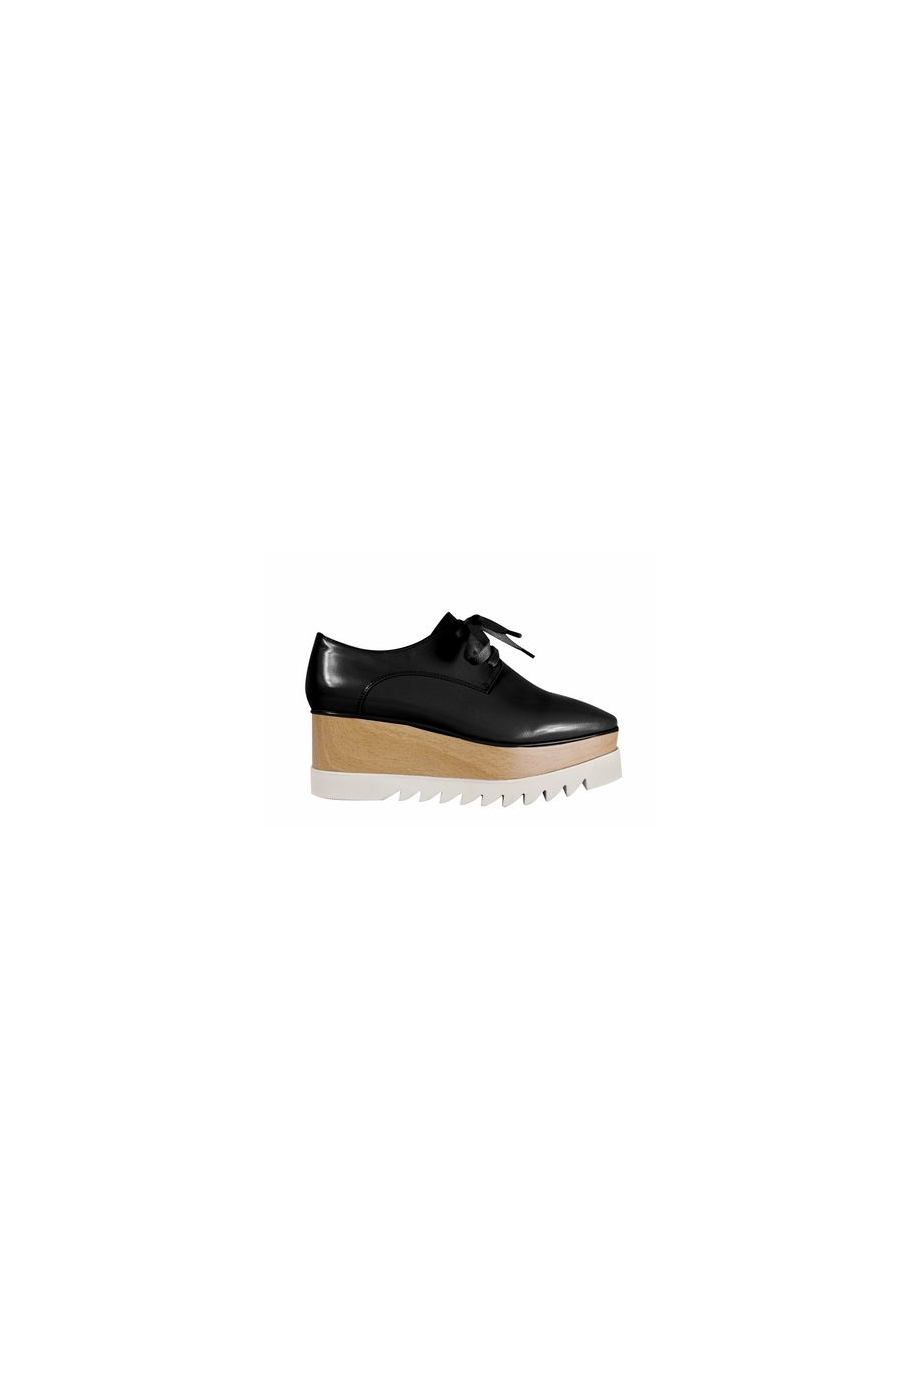 b26404bea0 WEMER Lace Up Oxford Platform Sneakers |Black| In Shoes | JESSICABUURMAN  [10914] - $177.00 : JESSICABUURMAN.